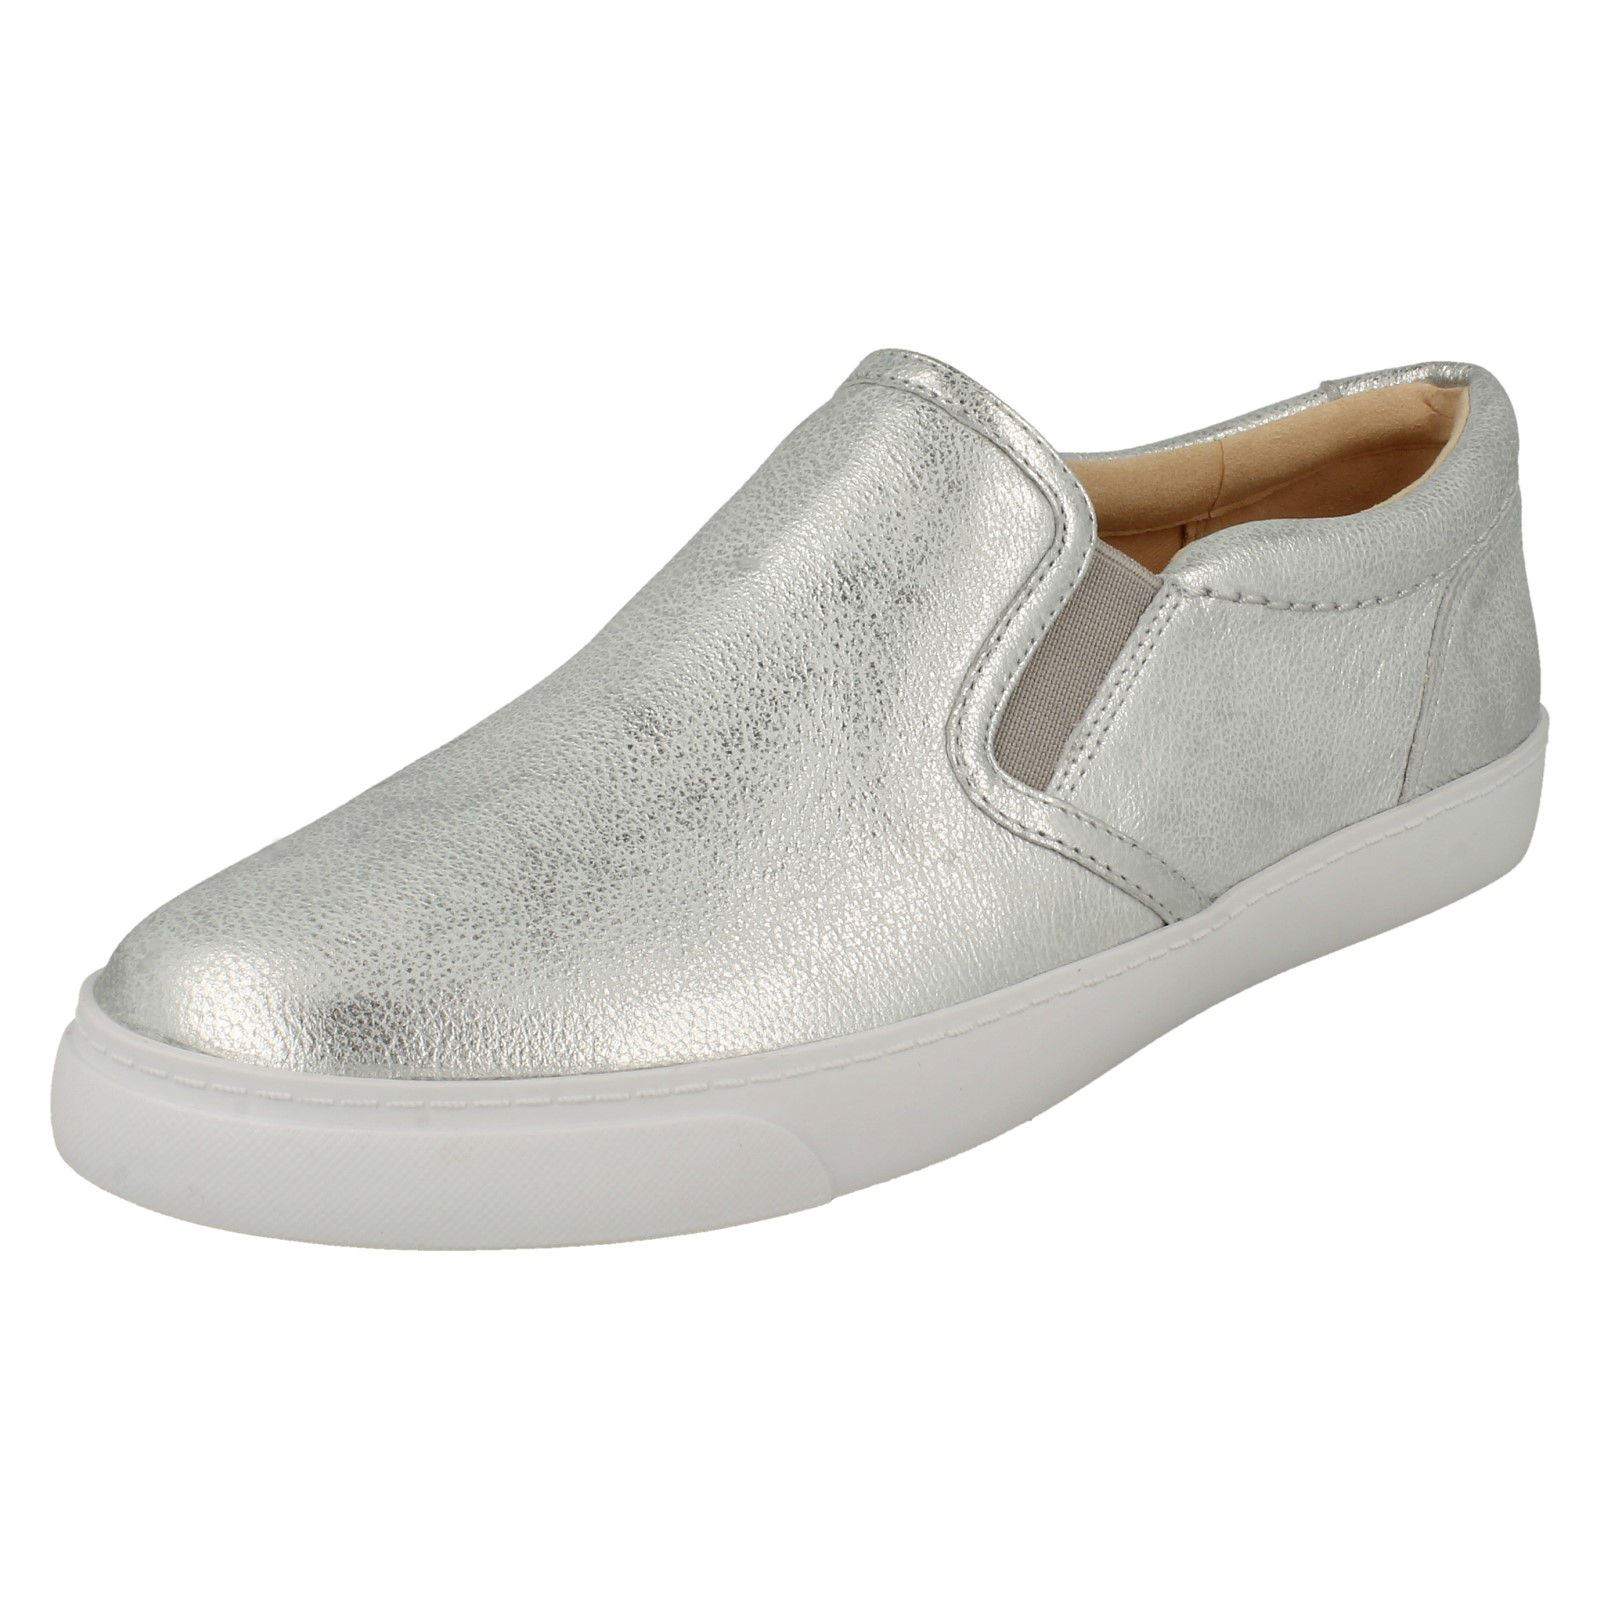 Ladies Clarks Casual Loafer Styled Shoes /'Glove Puppet/'